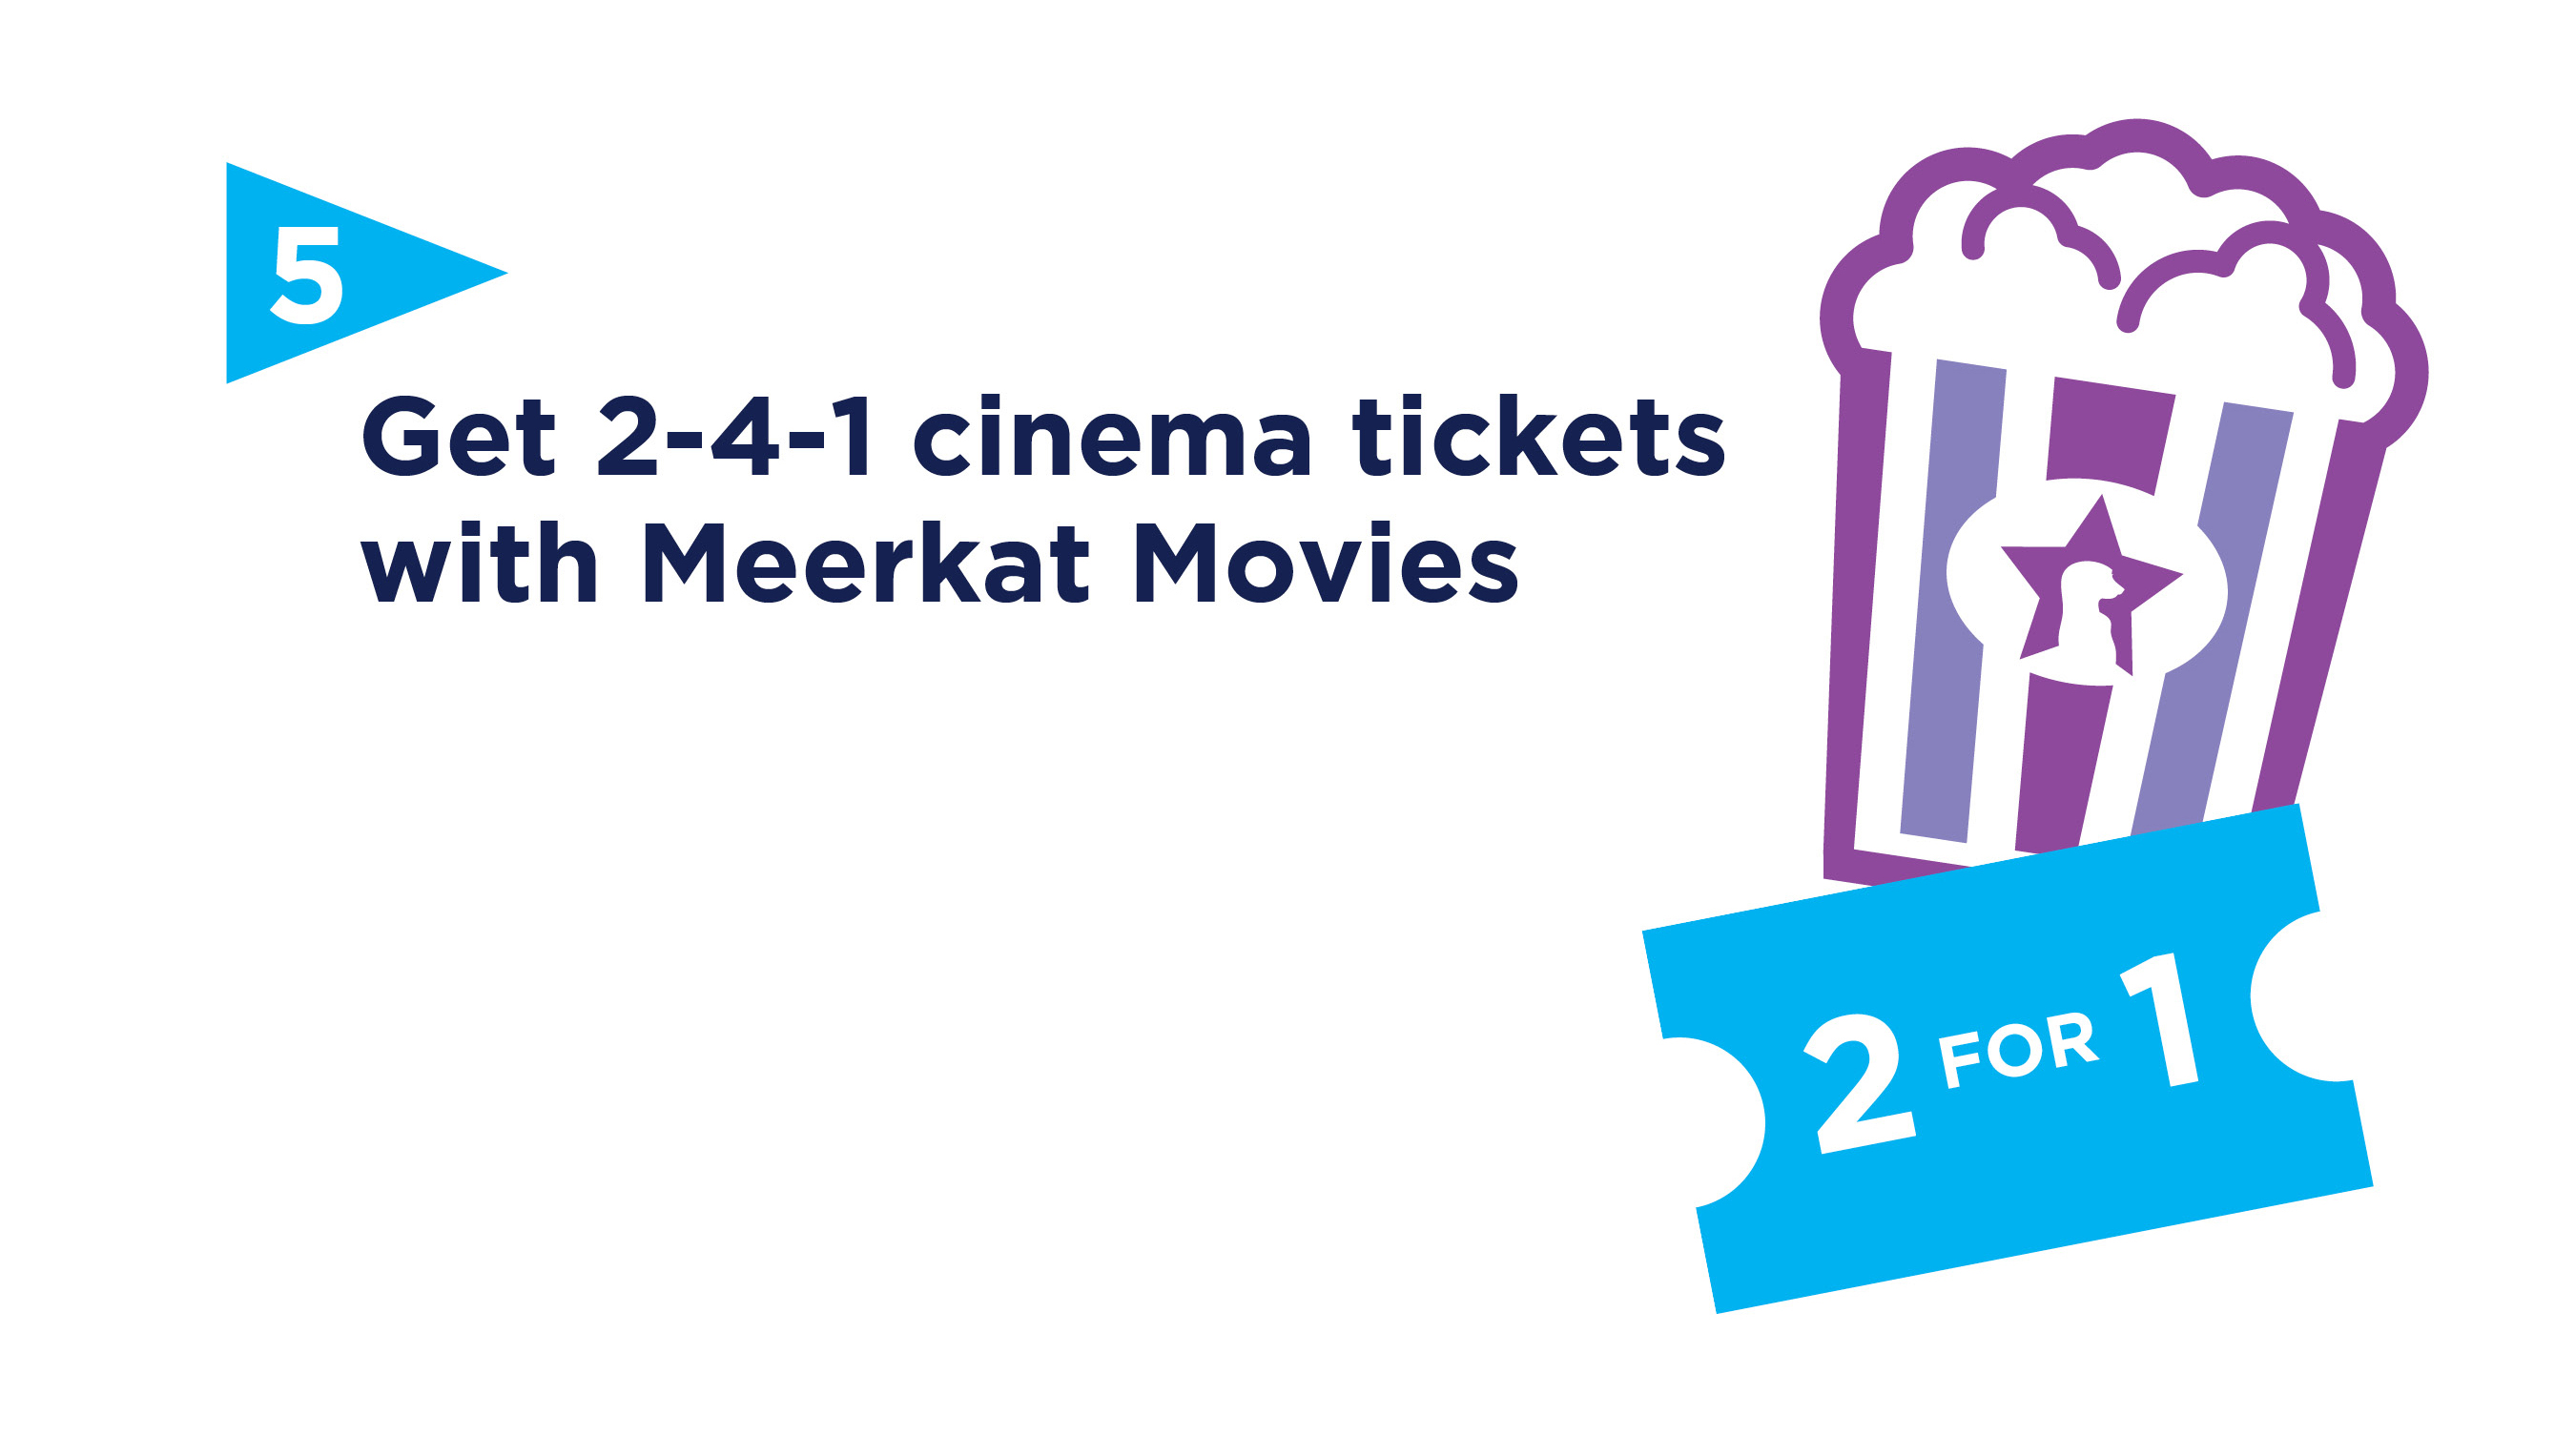 2 for 1 movie tickets with Meerkat movies